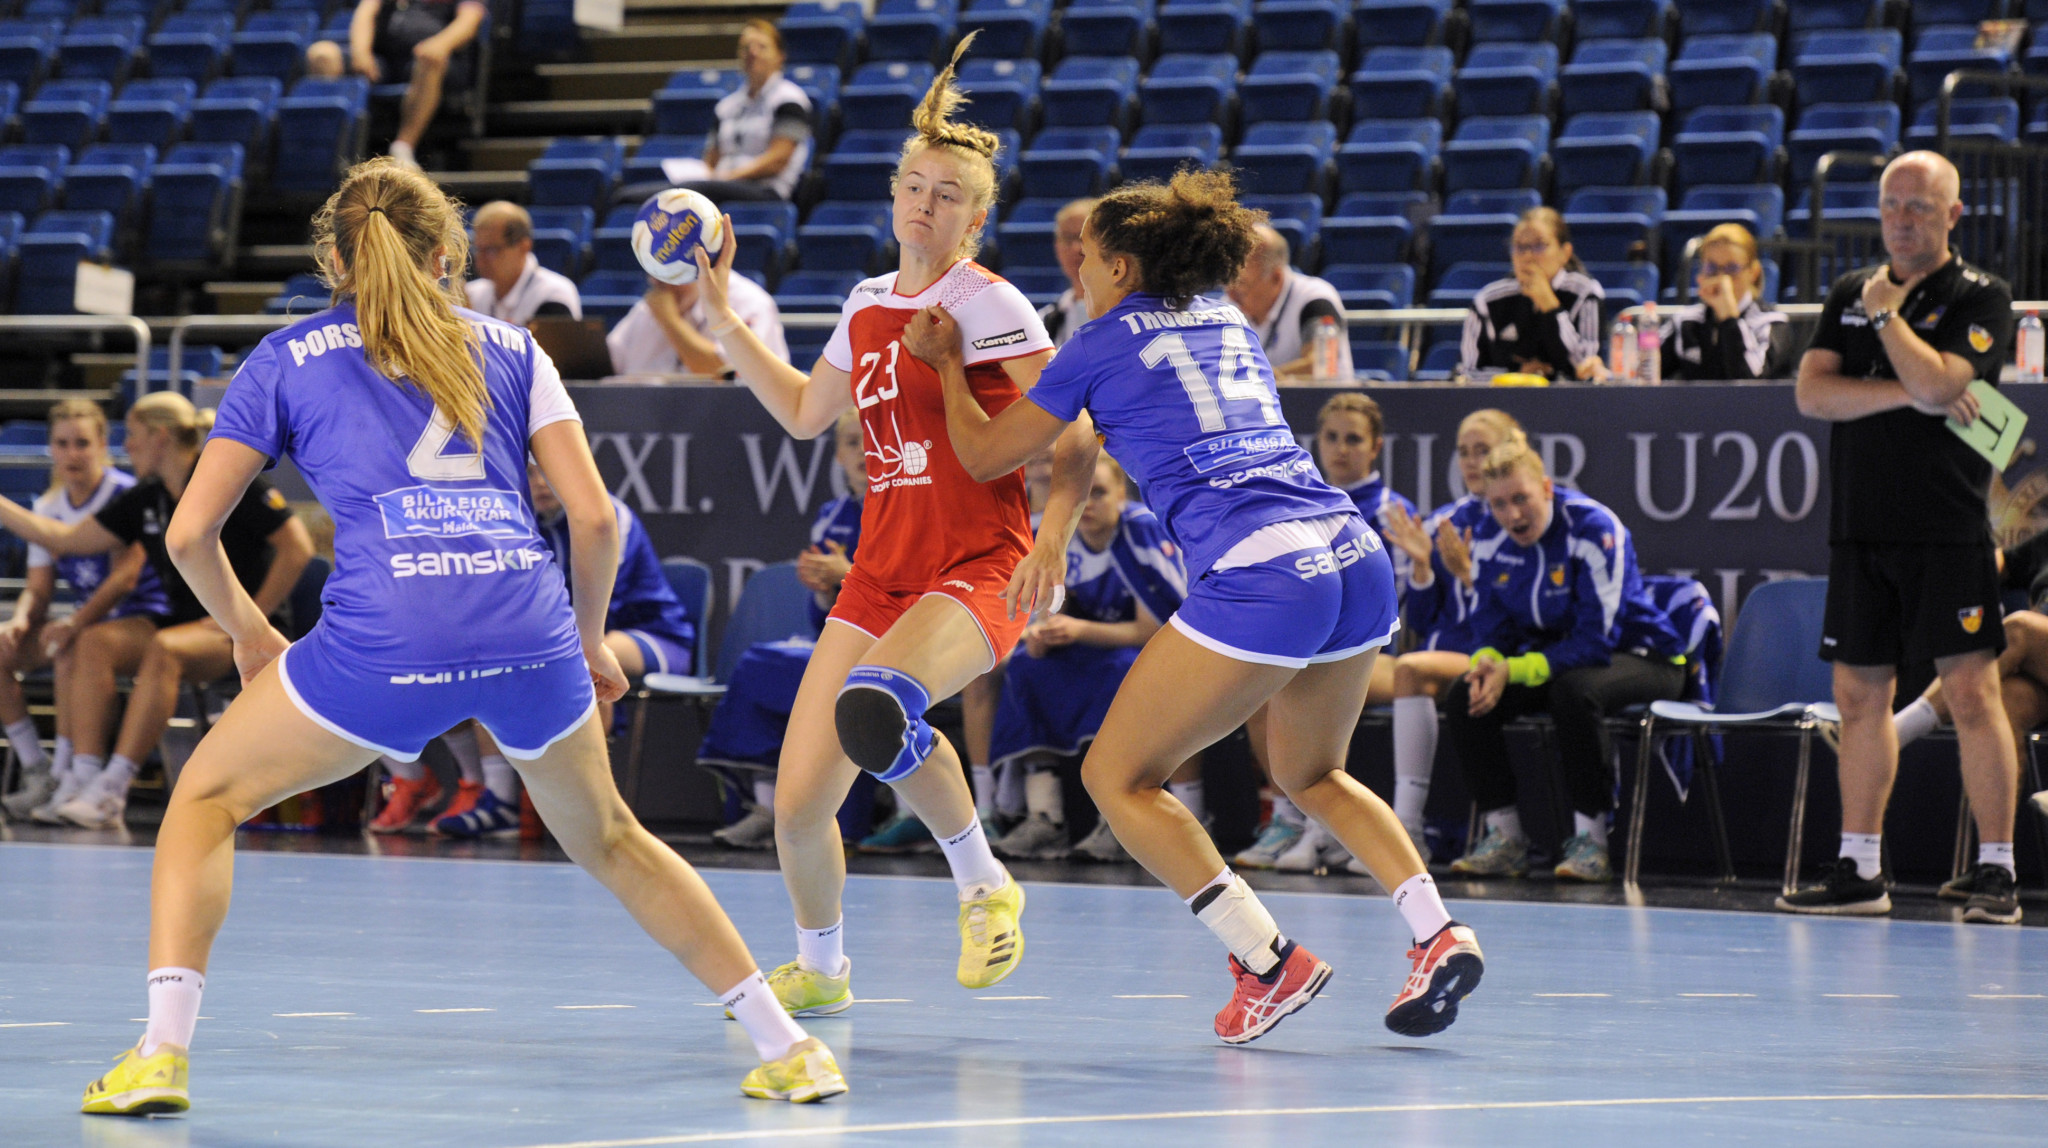 The action continued today in Debrecen ©IHF